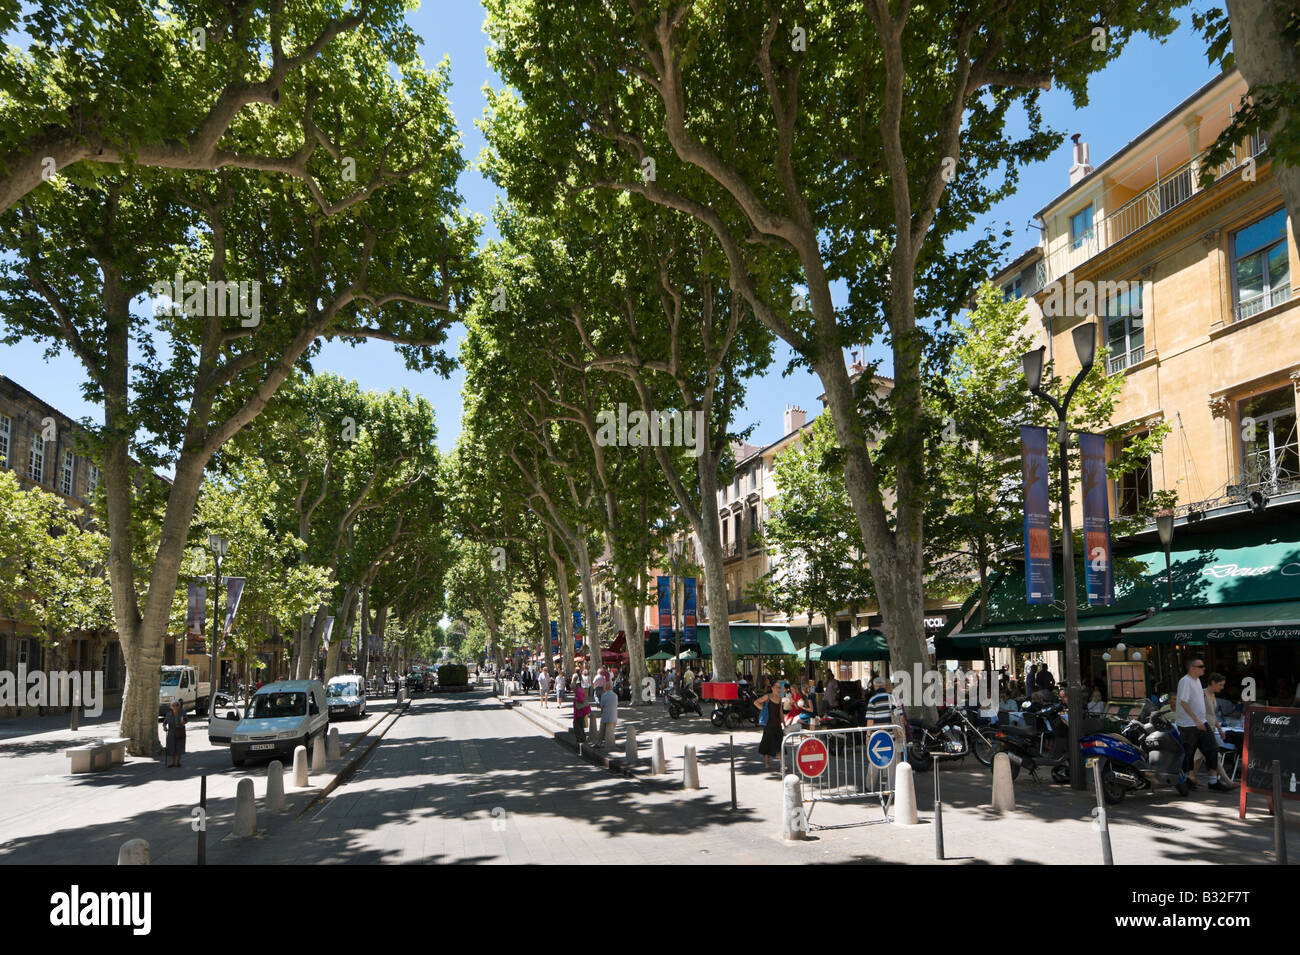 The Cours Mirabeau (Main Avenue) in the historic city centre, Aix en Provence, France - Stock Image